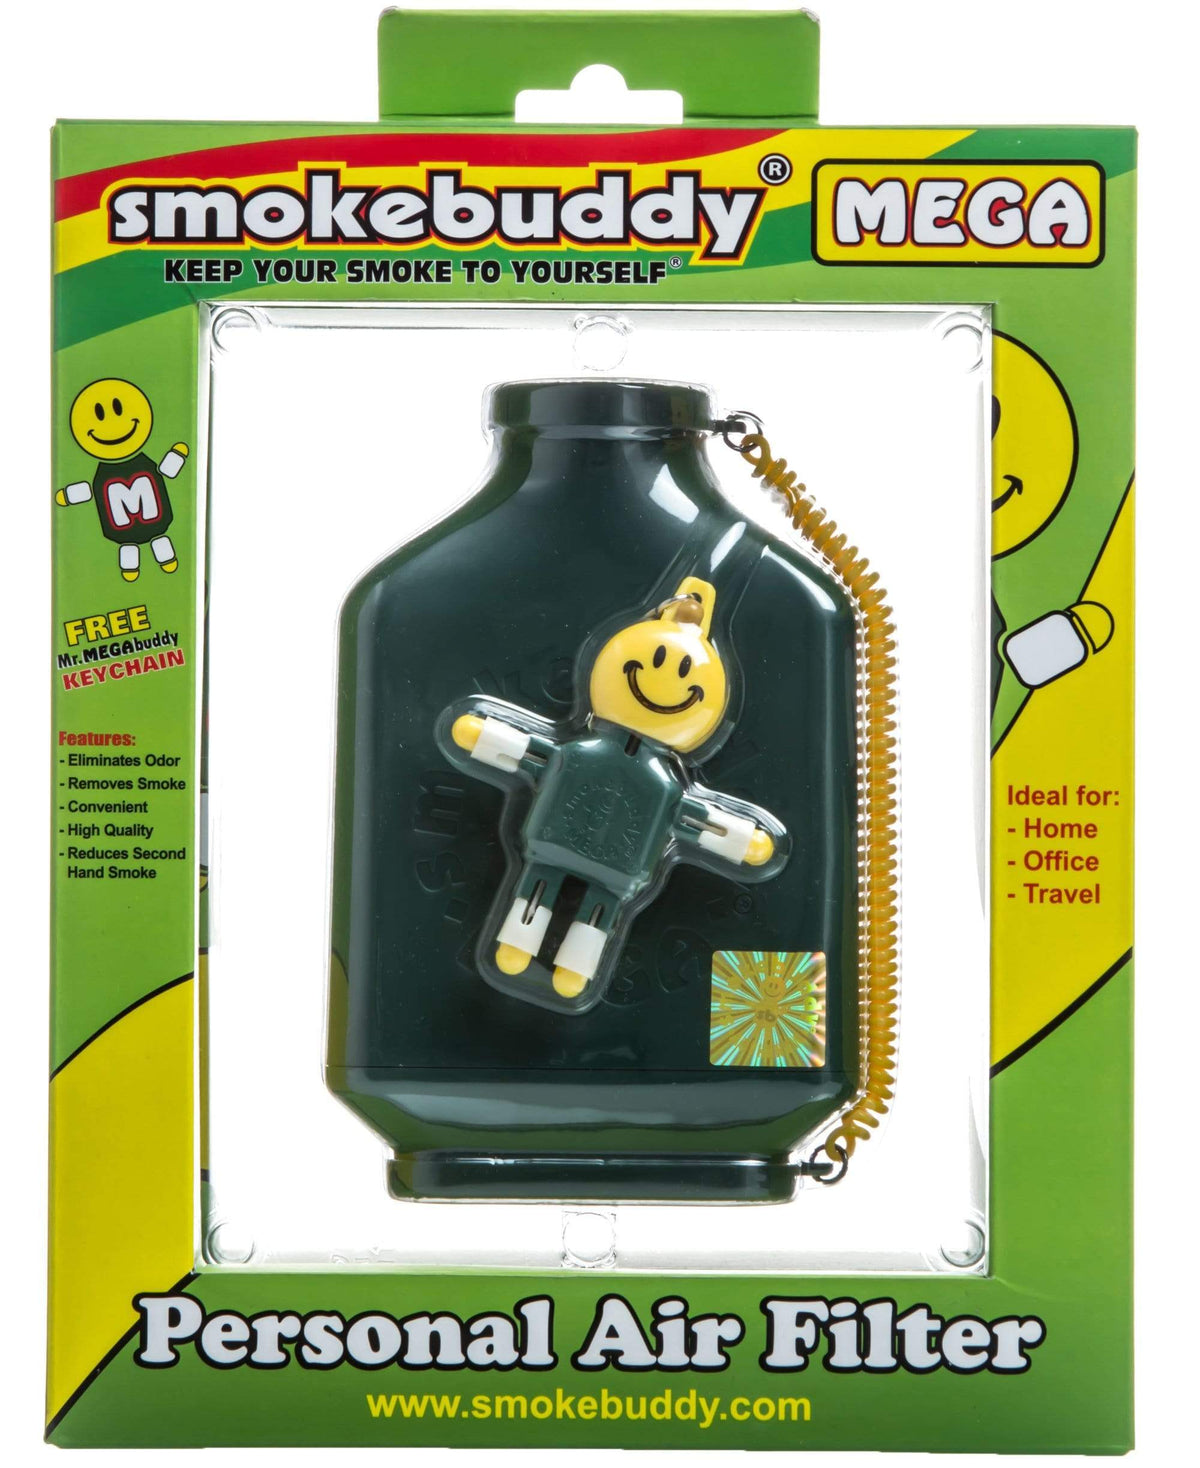 Smokebuddy Mega